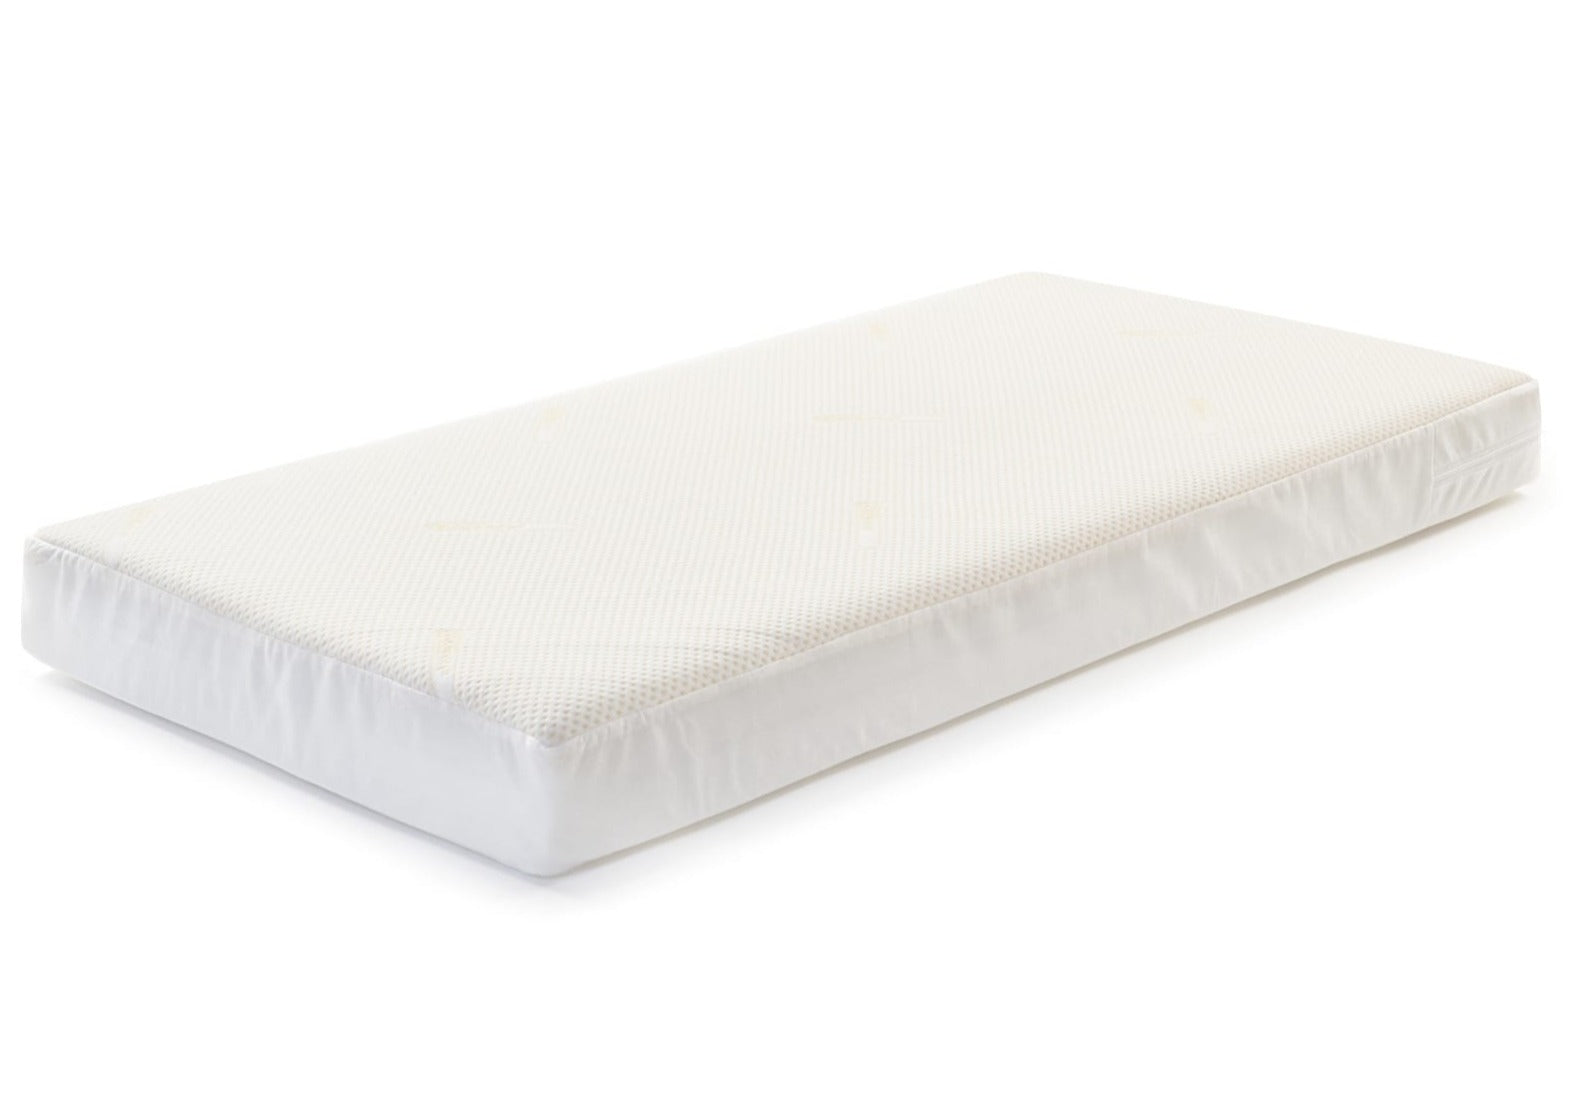 70x140cm CoolMax® Cot Mattress